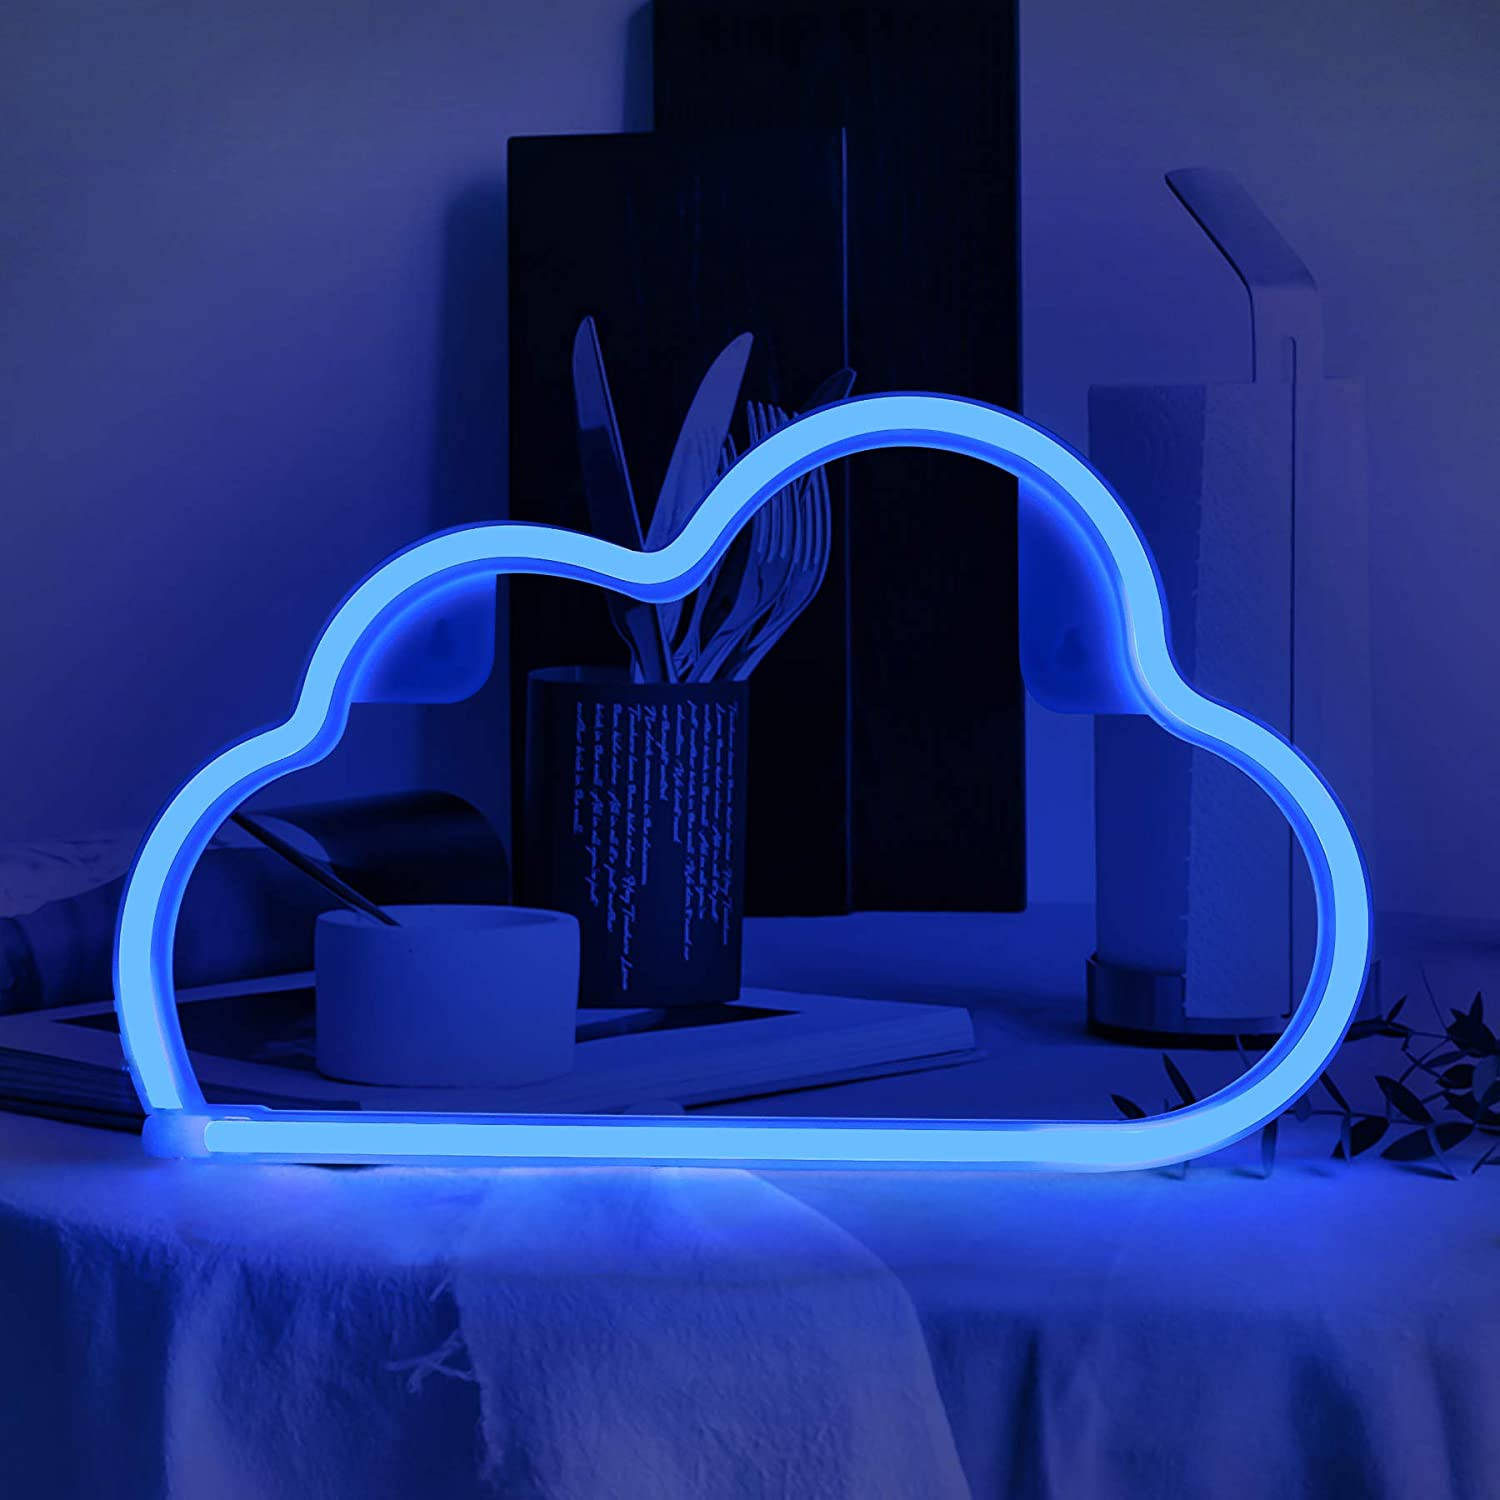 Neon Signs LED Sign, Cloud Neon Sign for Wall Decor Room Bar Christmas Halloween Wedding Party Blue Cloud Light